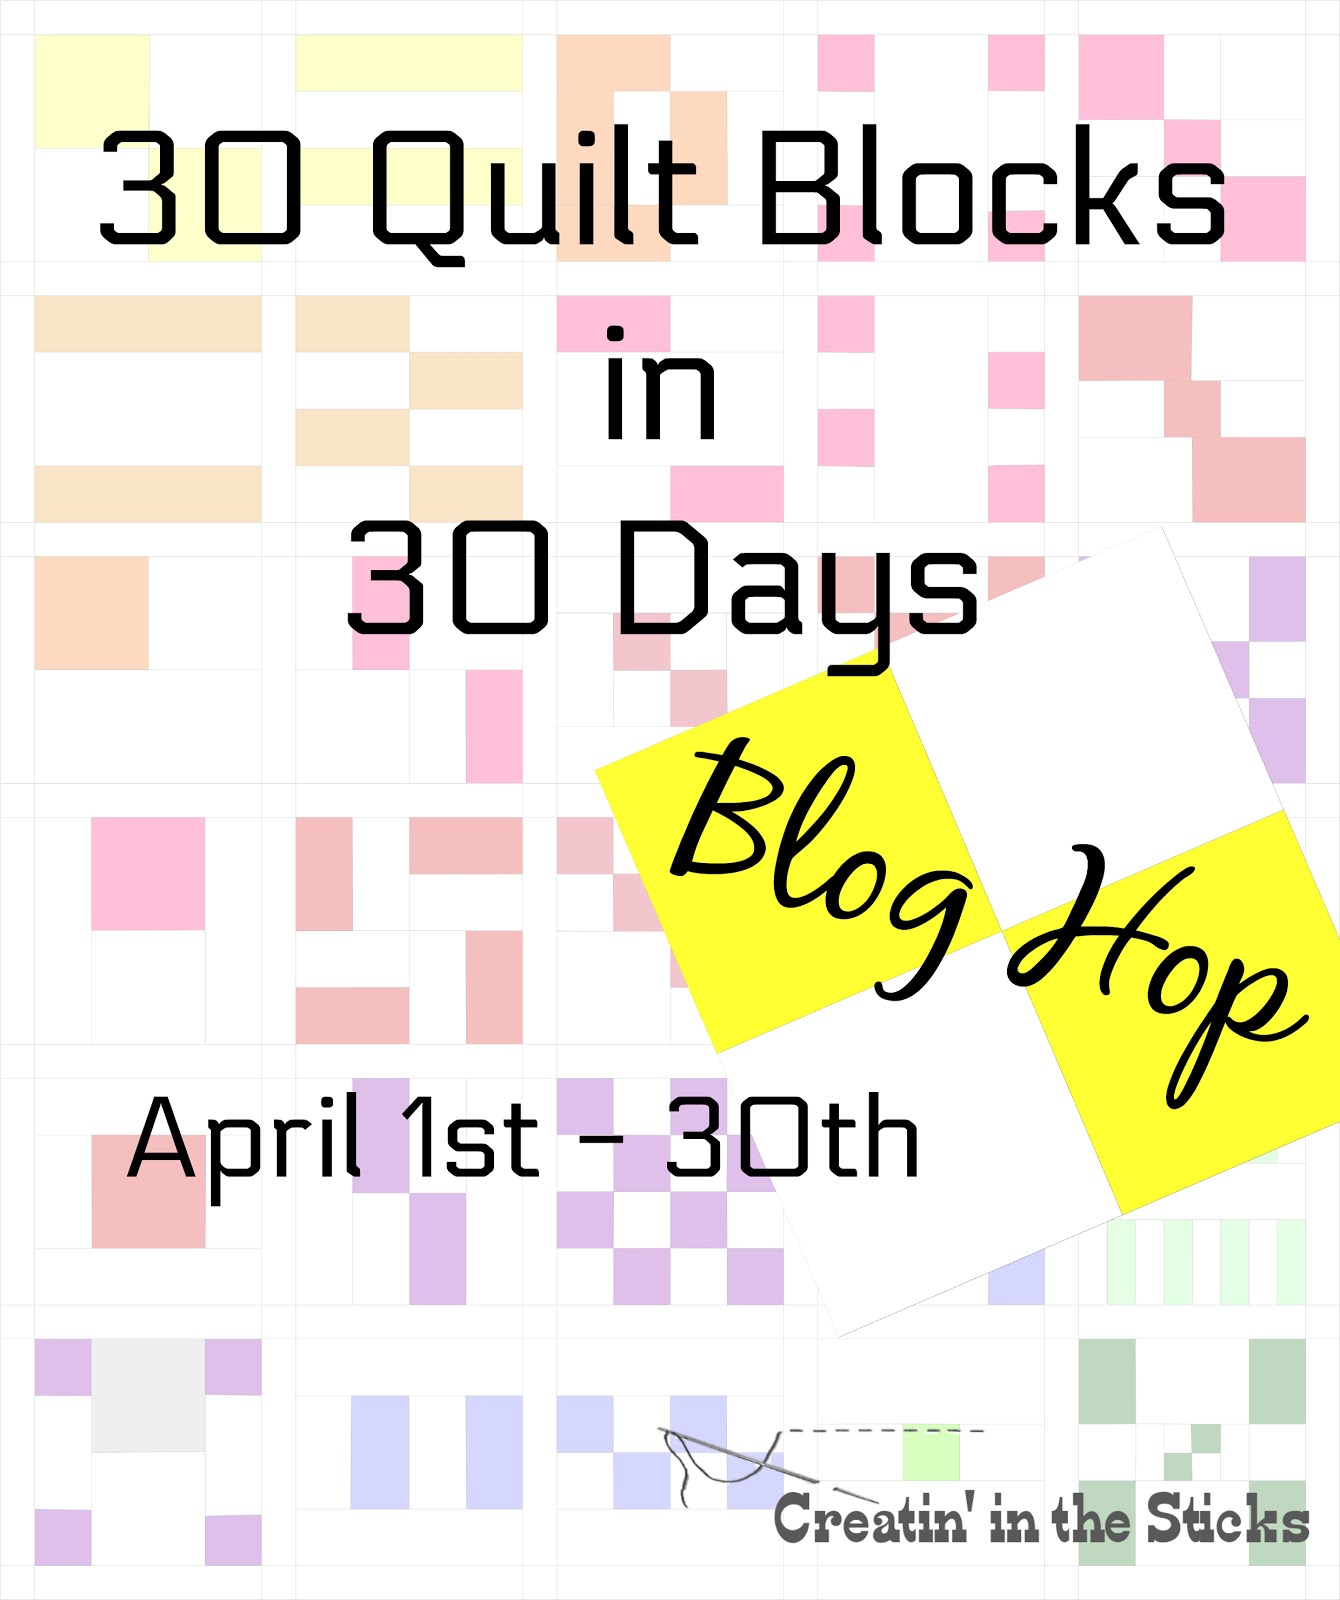 Bloggers - There are only 4 spots left.